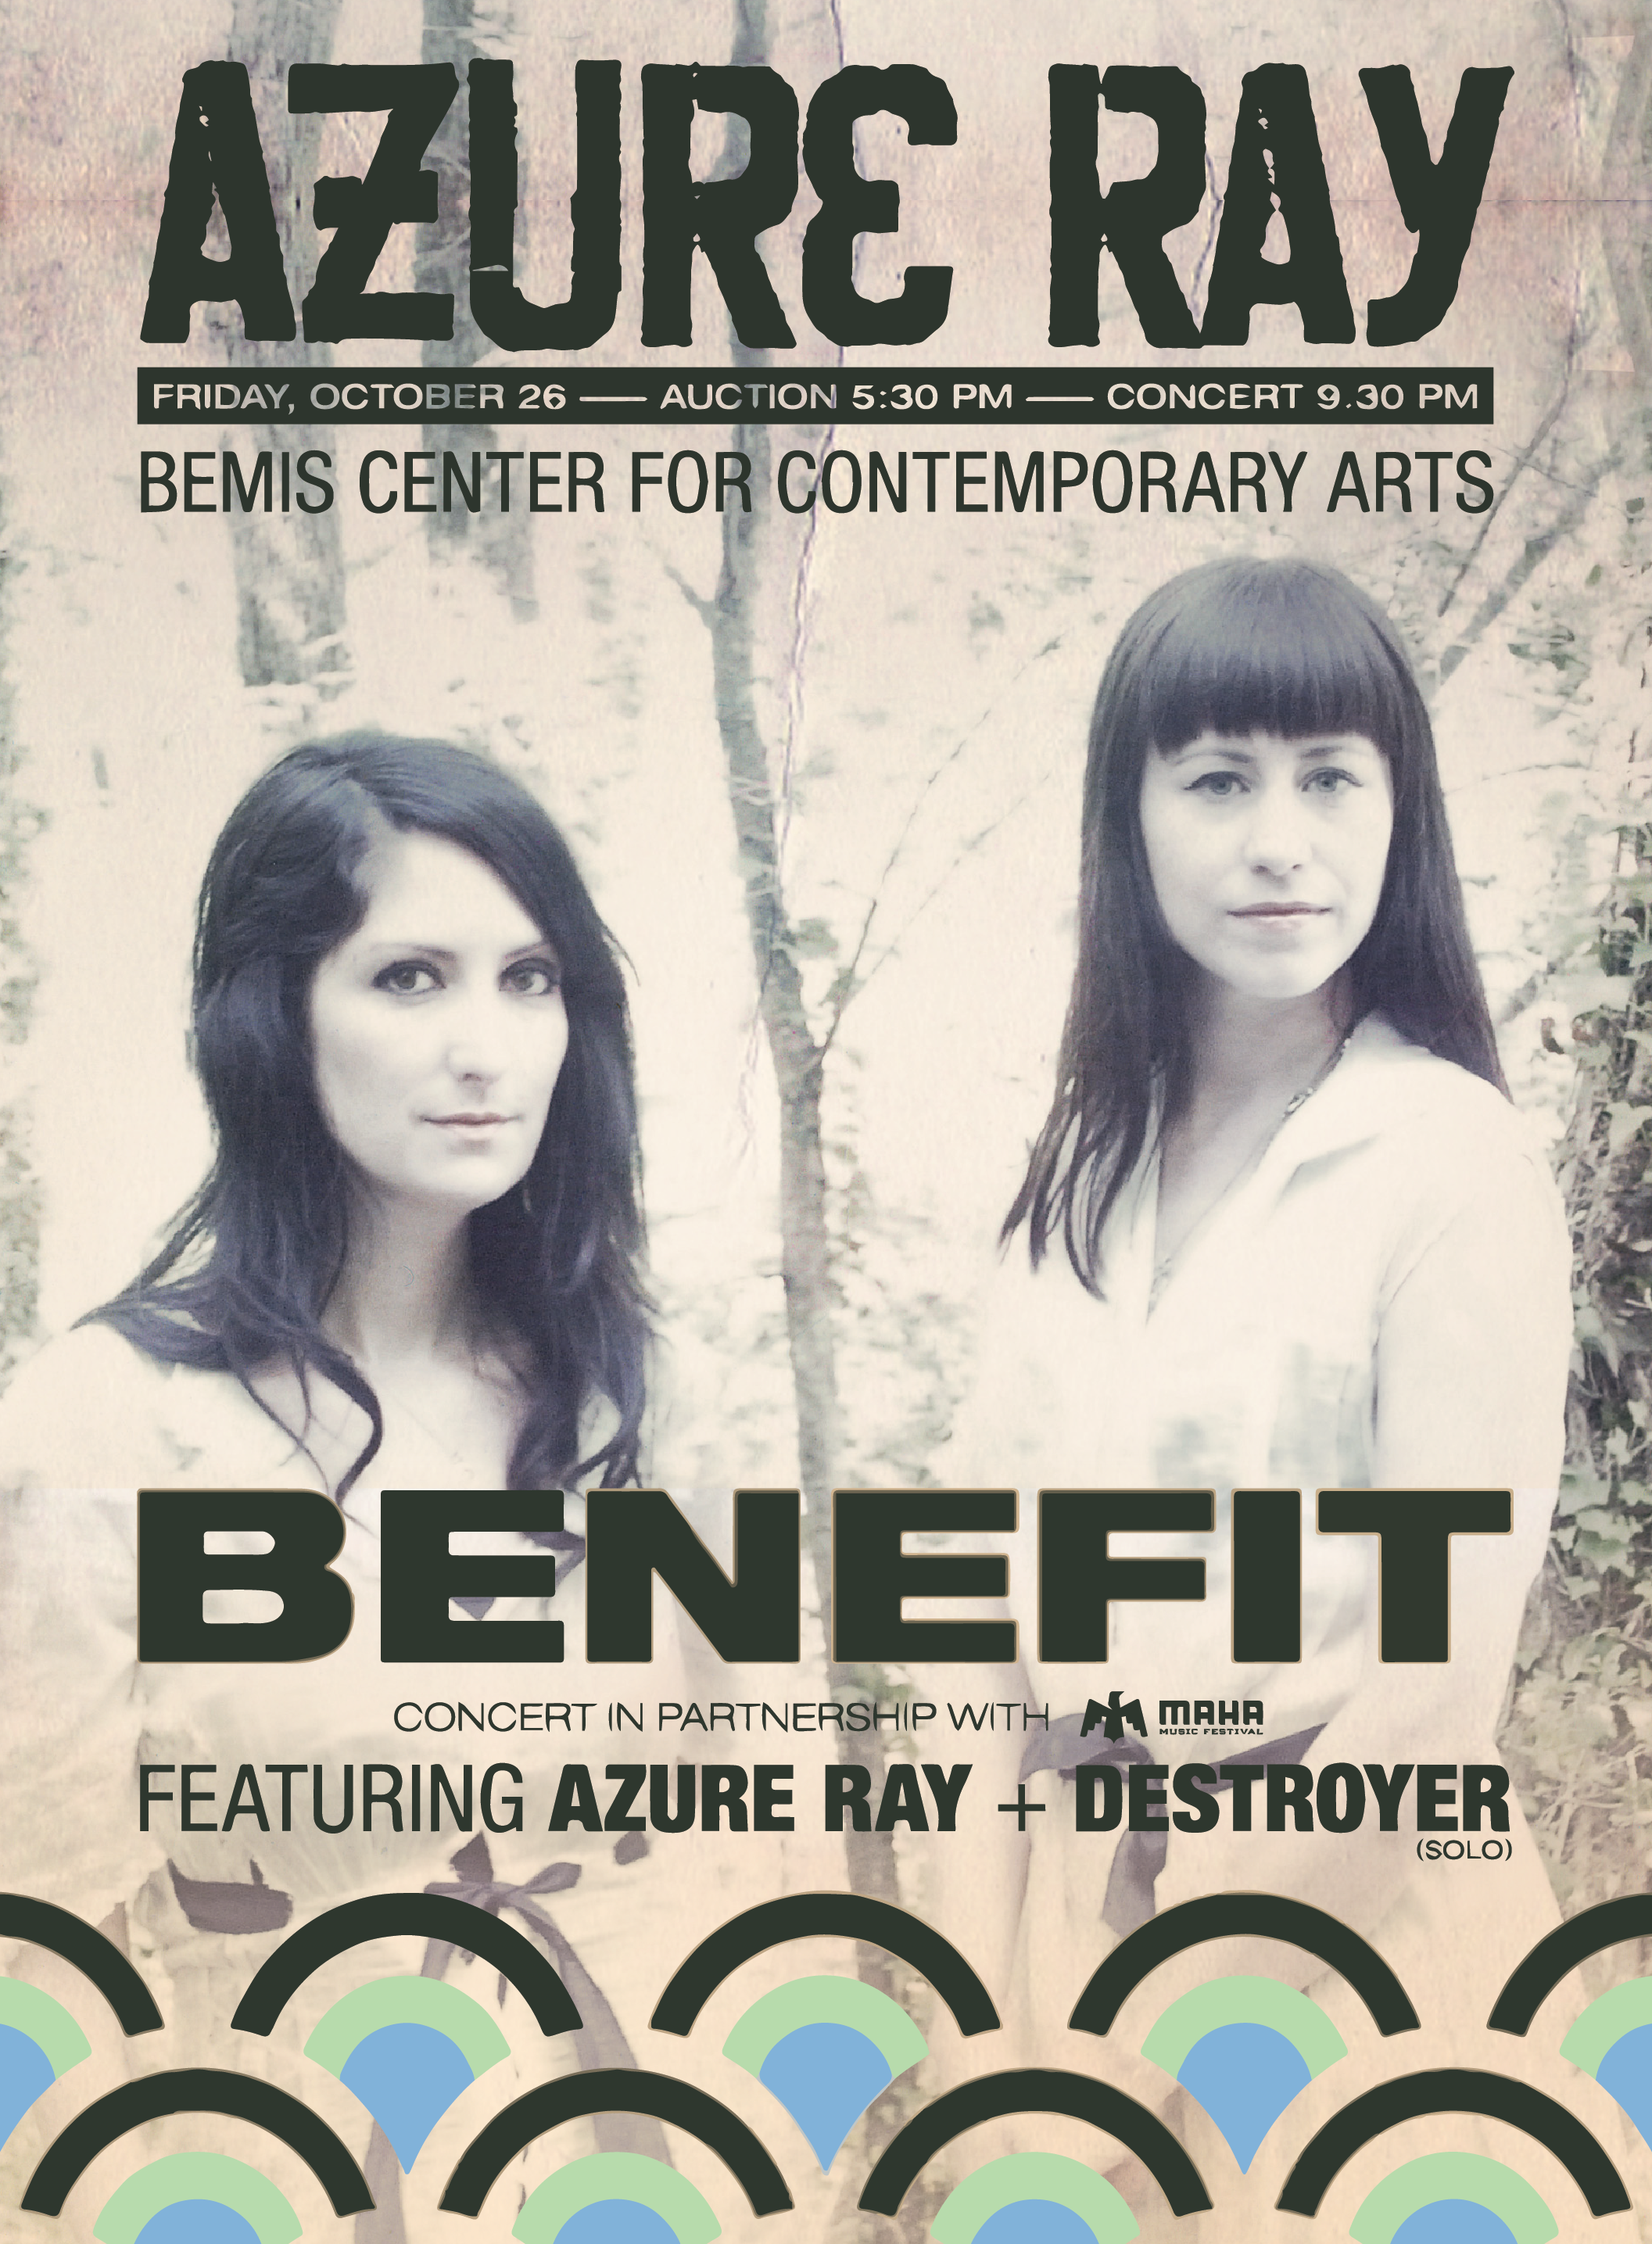 Azure Ray - Bemic Center flyer - FINAL-01.png